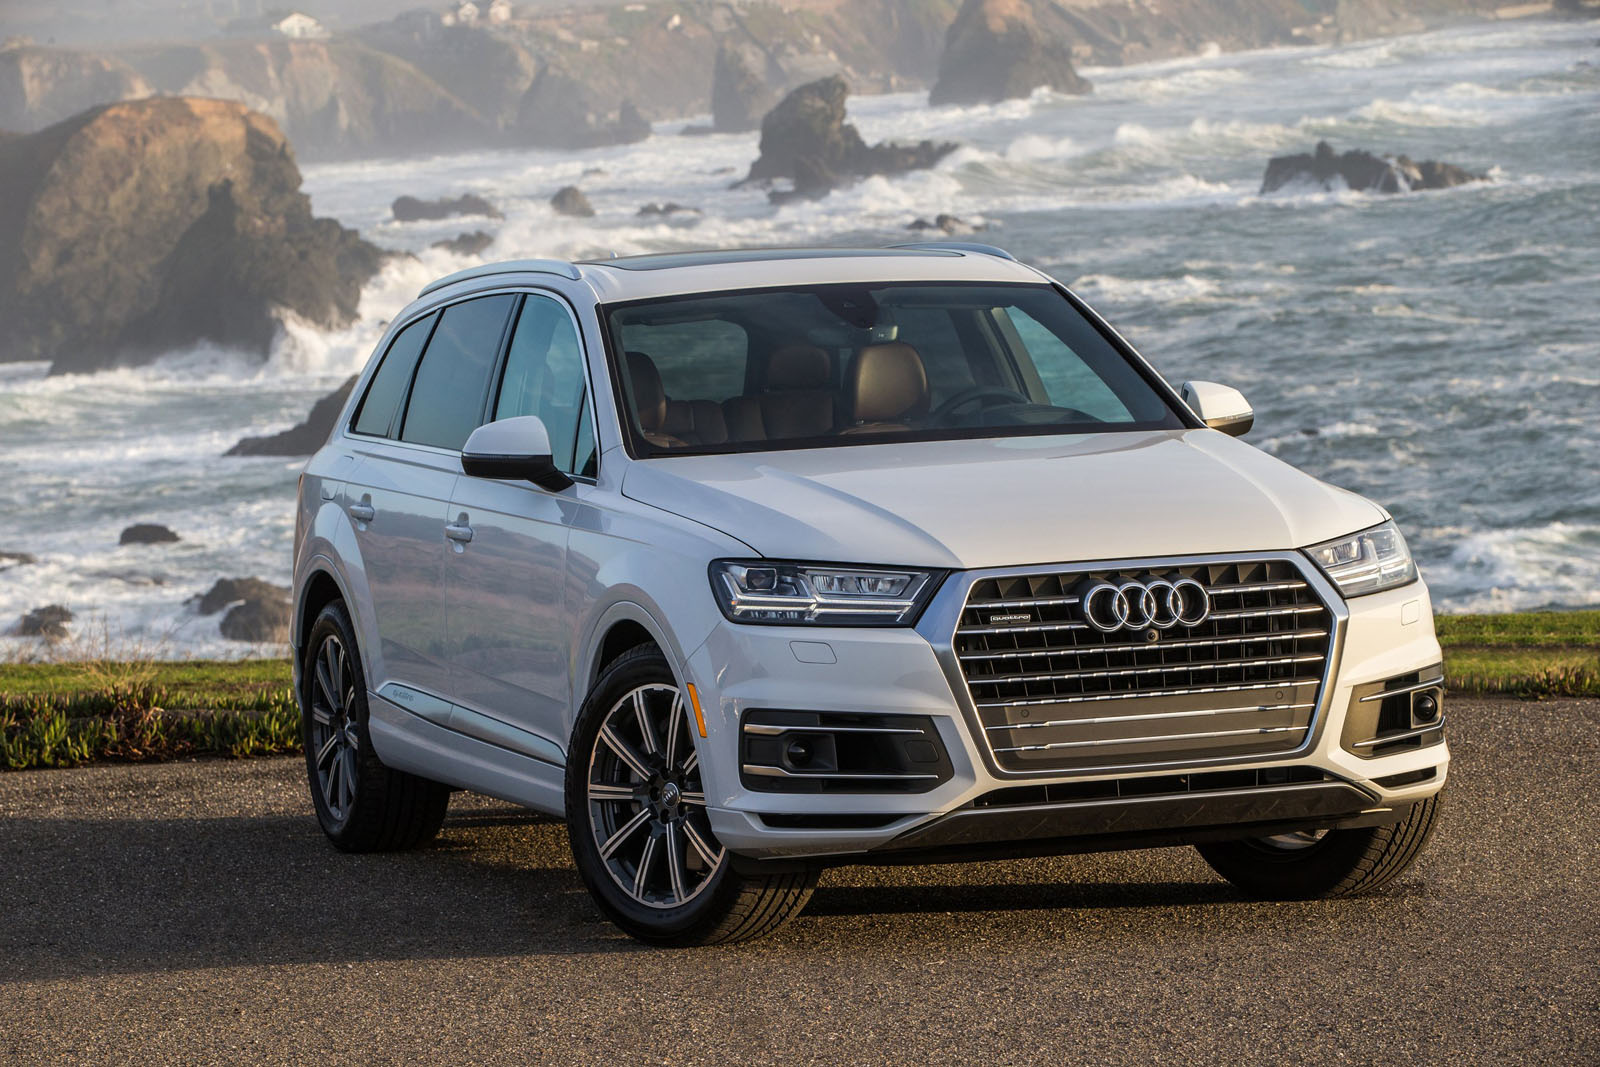 audi recalls over 14 000 new q7 crossovers over airbag. Black Bedroom Furniture Sets. Home Design Ideas